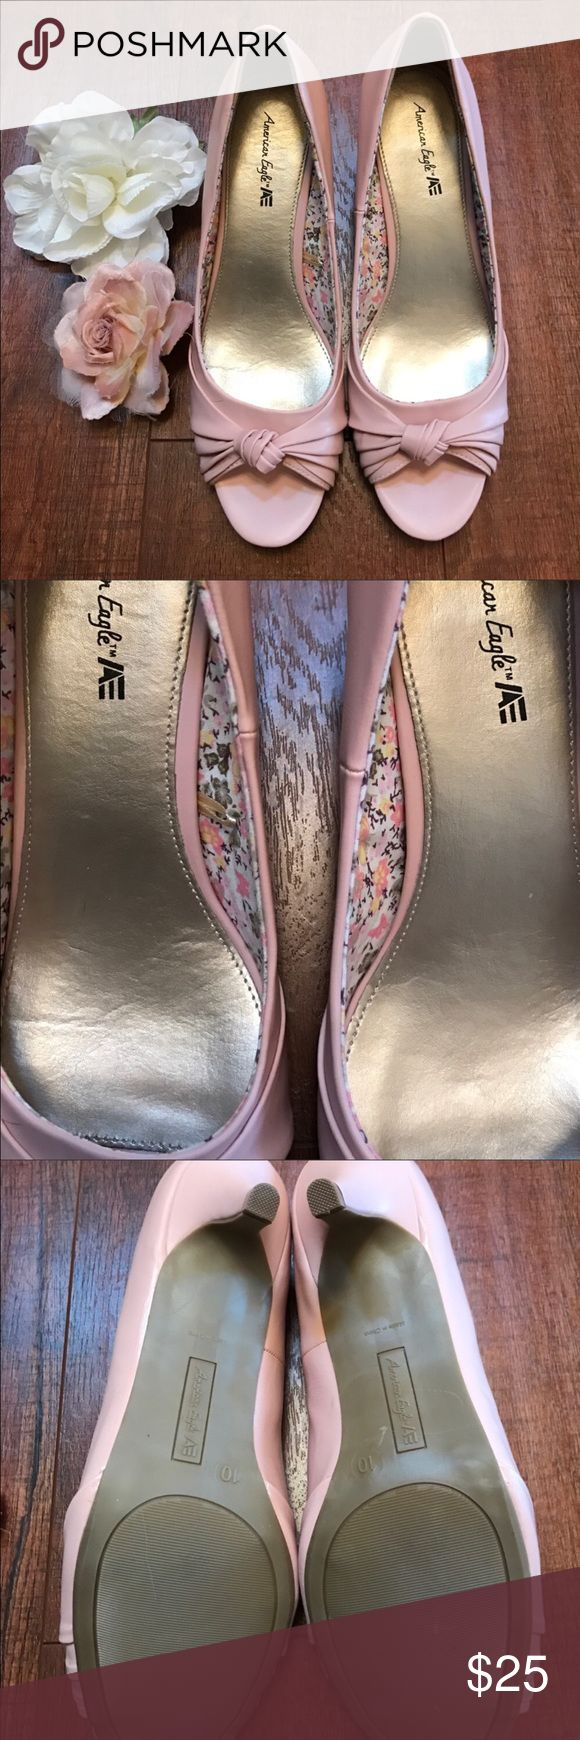 """✨American Eagle Pink Heels✨ 💖Adorable Pink Heels from American Eagle💖 Size 10✨Cute Floral Interior Design🌸✨Purchased NWOT from another Posher, just to go with my bridesmaids dress✨Only worn for a few hours for the wedding✨Still in Great Condition!💖 Heel is about 2""""-3"""", not too tall✨Perfect for taller ladies that still like to wear heels✨Open toe &Beautiful Bow Design🎀 Too cute to just sit in my closet!✨ Add to a Bundle🛍 Always open to offers🤗💖✨ American Eagle By Payless Shoes Heels"""